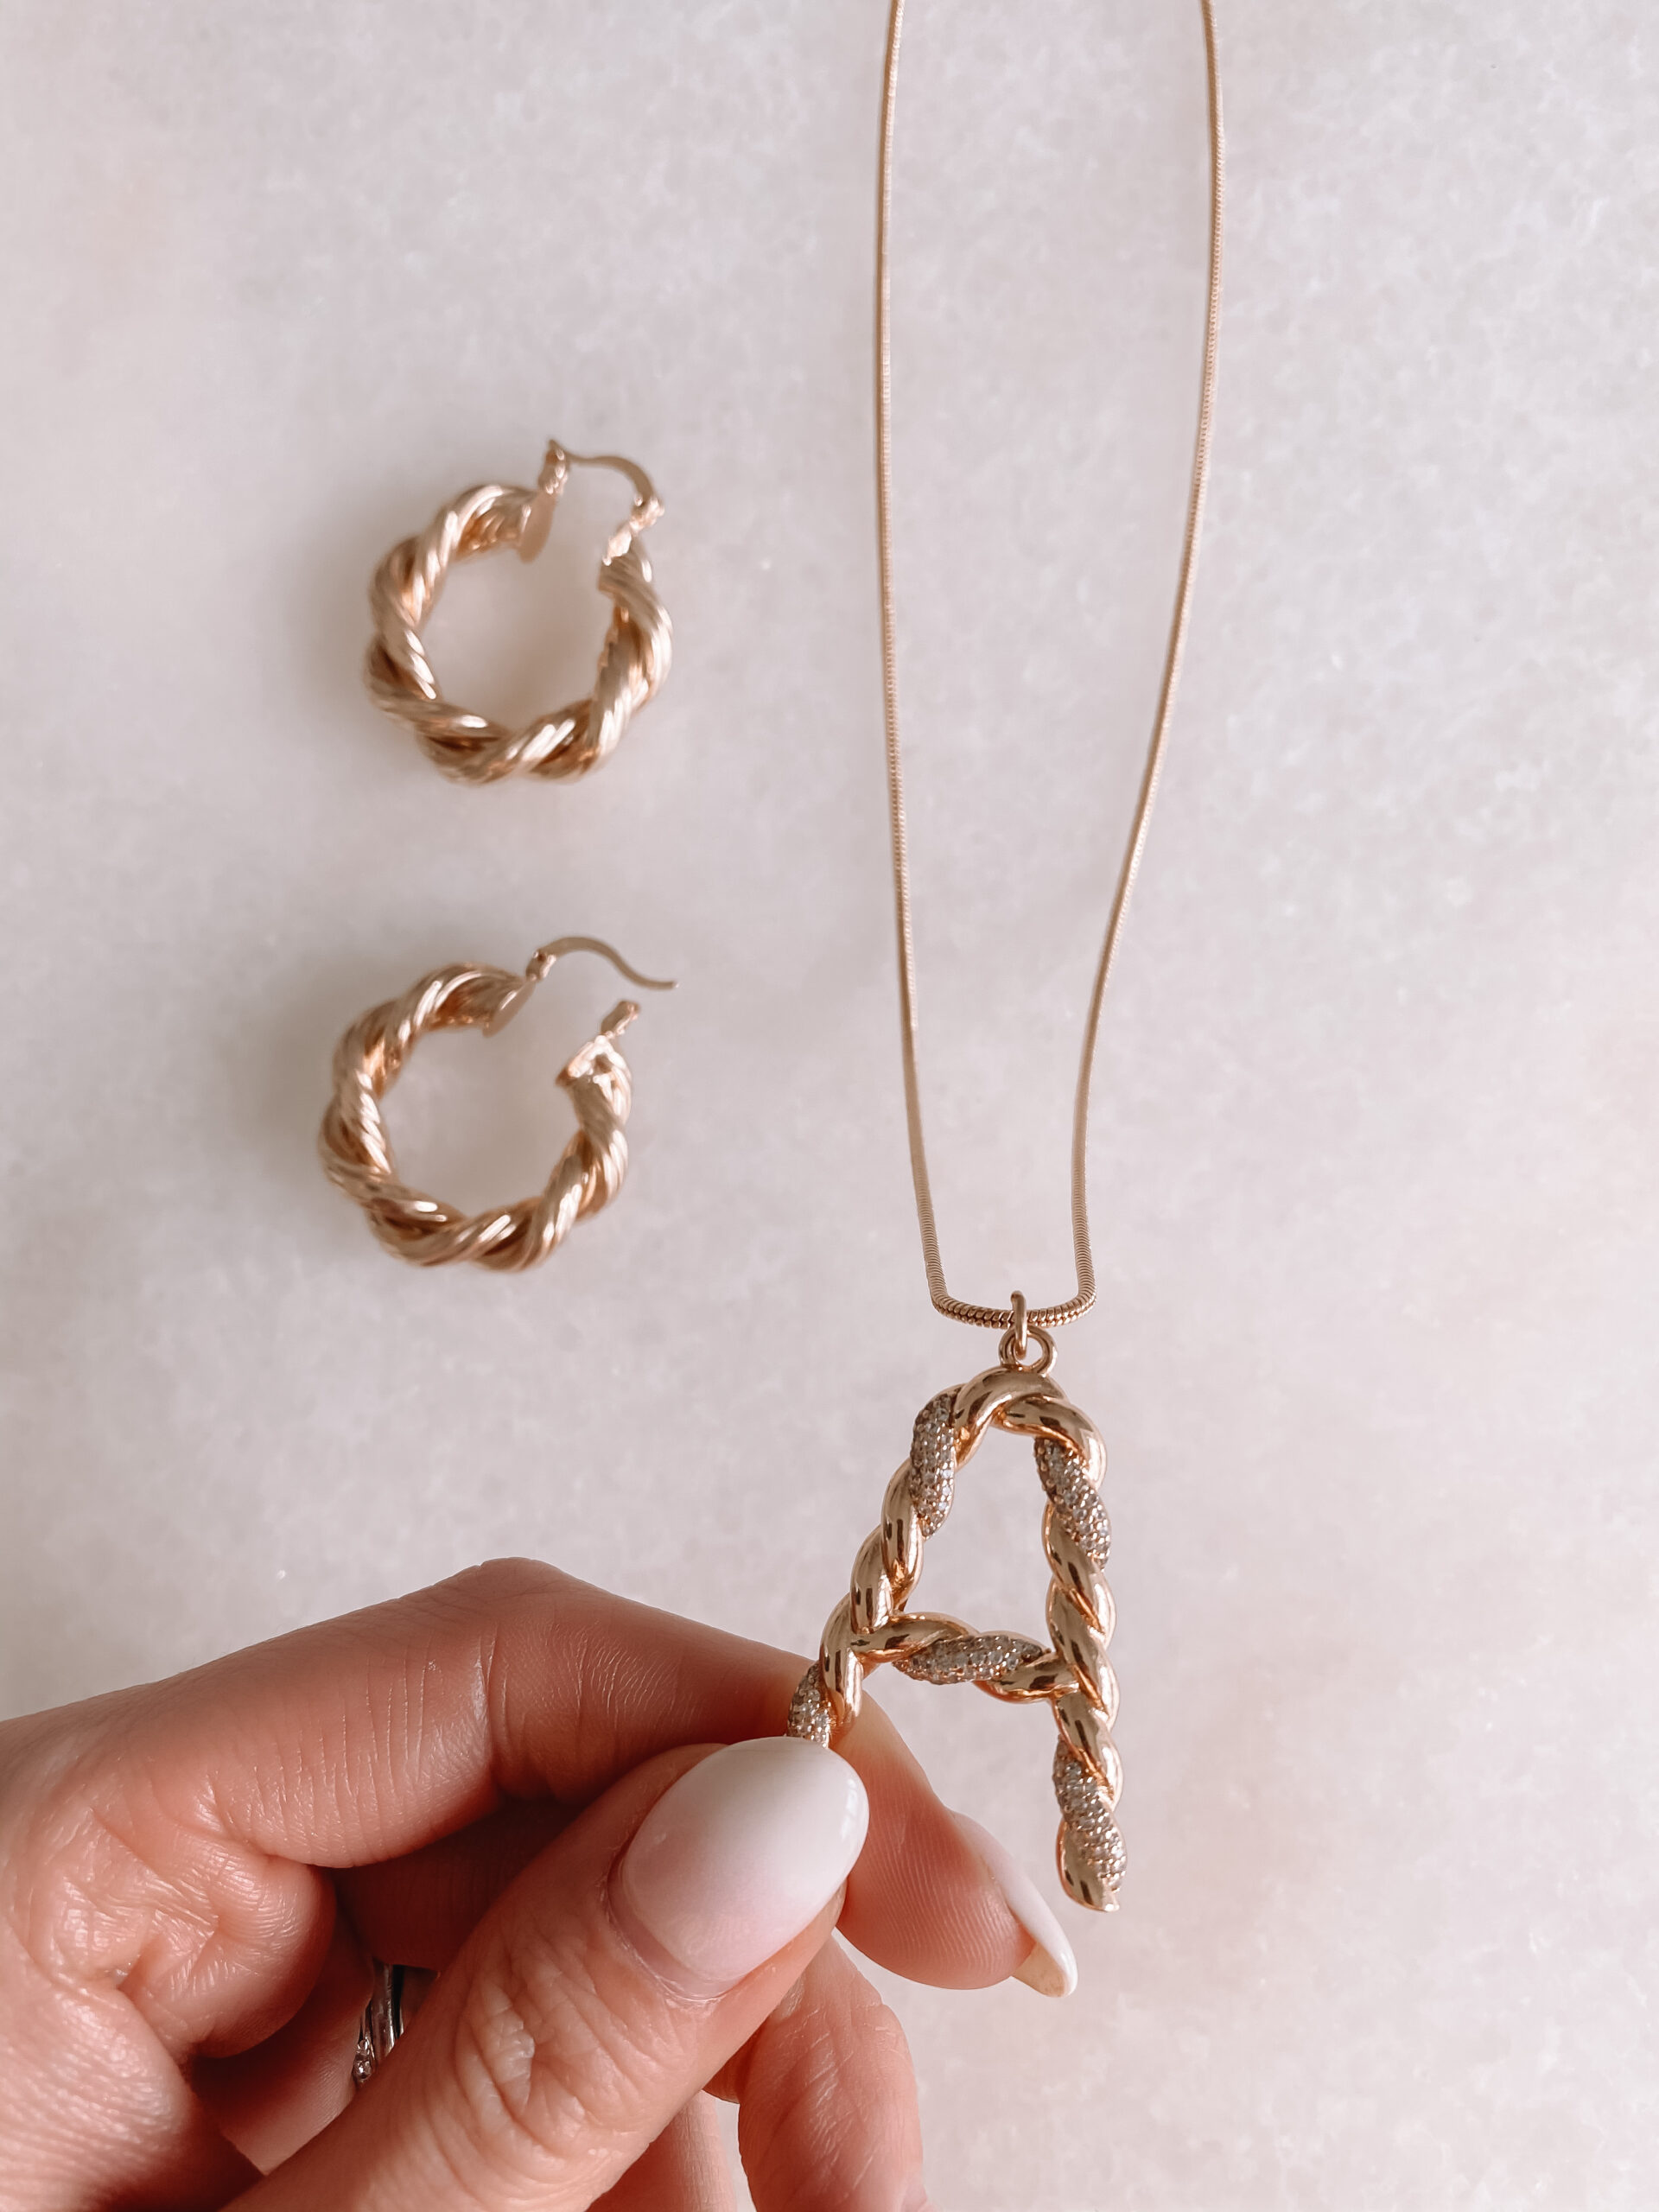 initial necklace and earrings